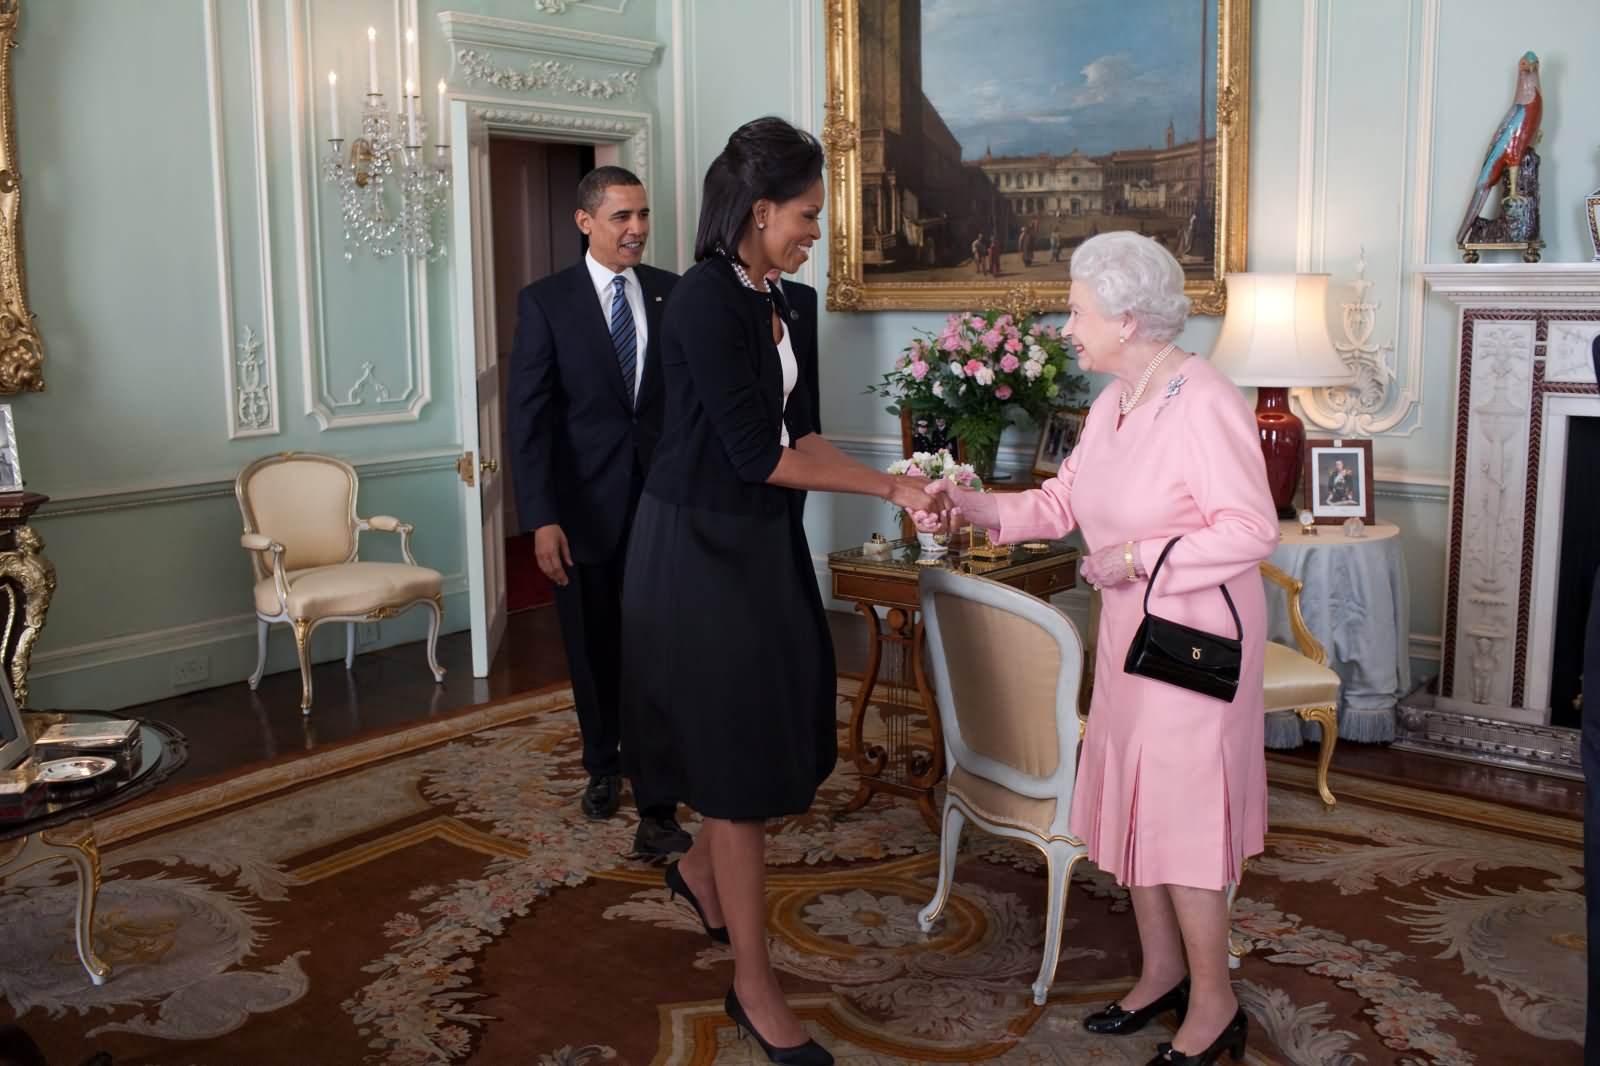 Barack Obama And Michelle Obama Meets Queen Elizabeth II Inside The Buckingham Palace - THE MOST BEAUTIFUL INTERIOR PICTURES OF BUCKINGHAM PALACE LONDON